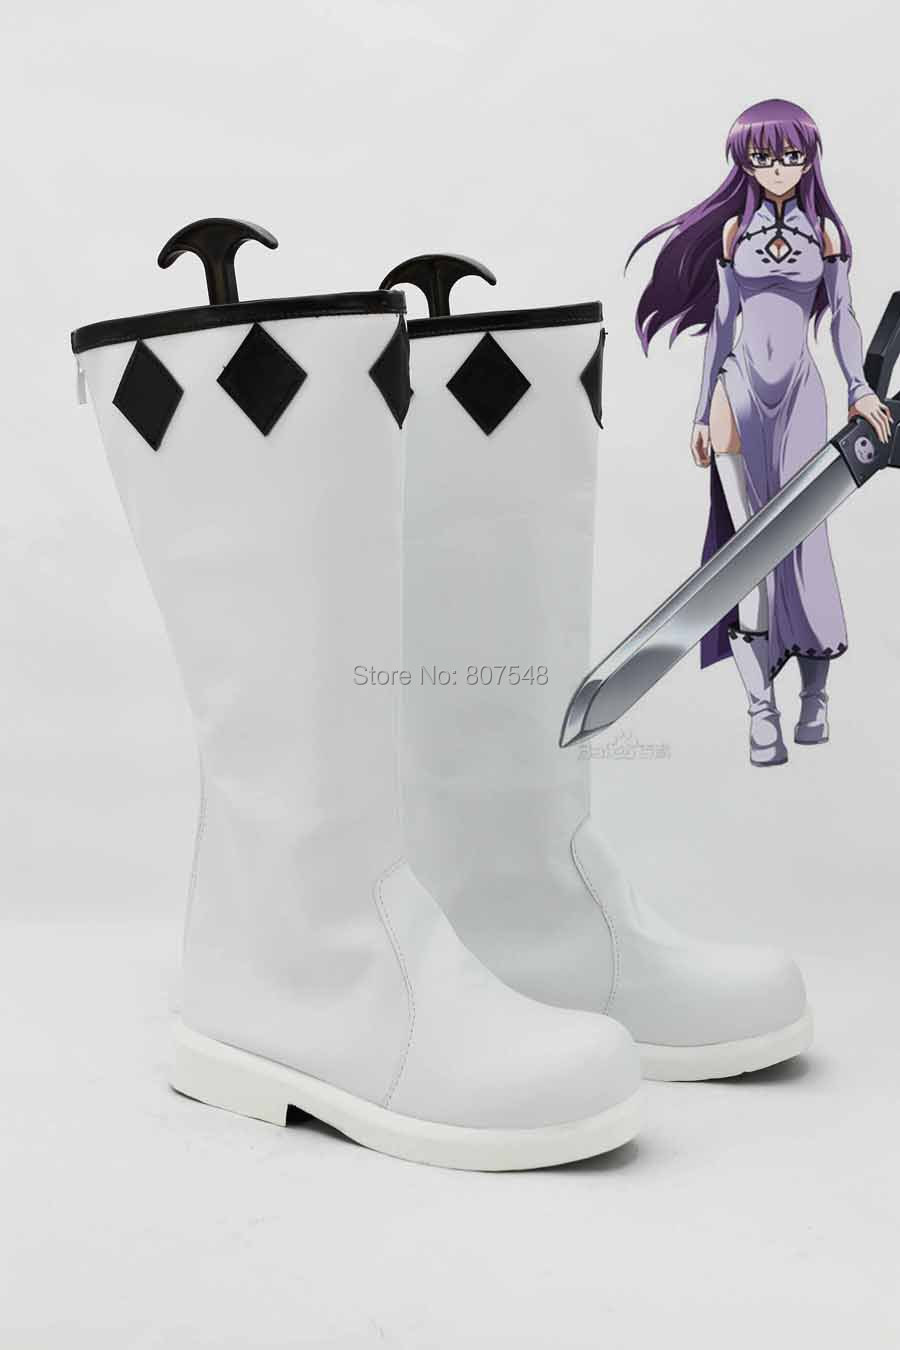 Akame ga KILL Anime Cosplay Women White Boots Girls Shoes Custom Costume Boots New Arrival